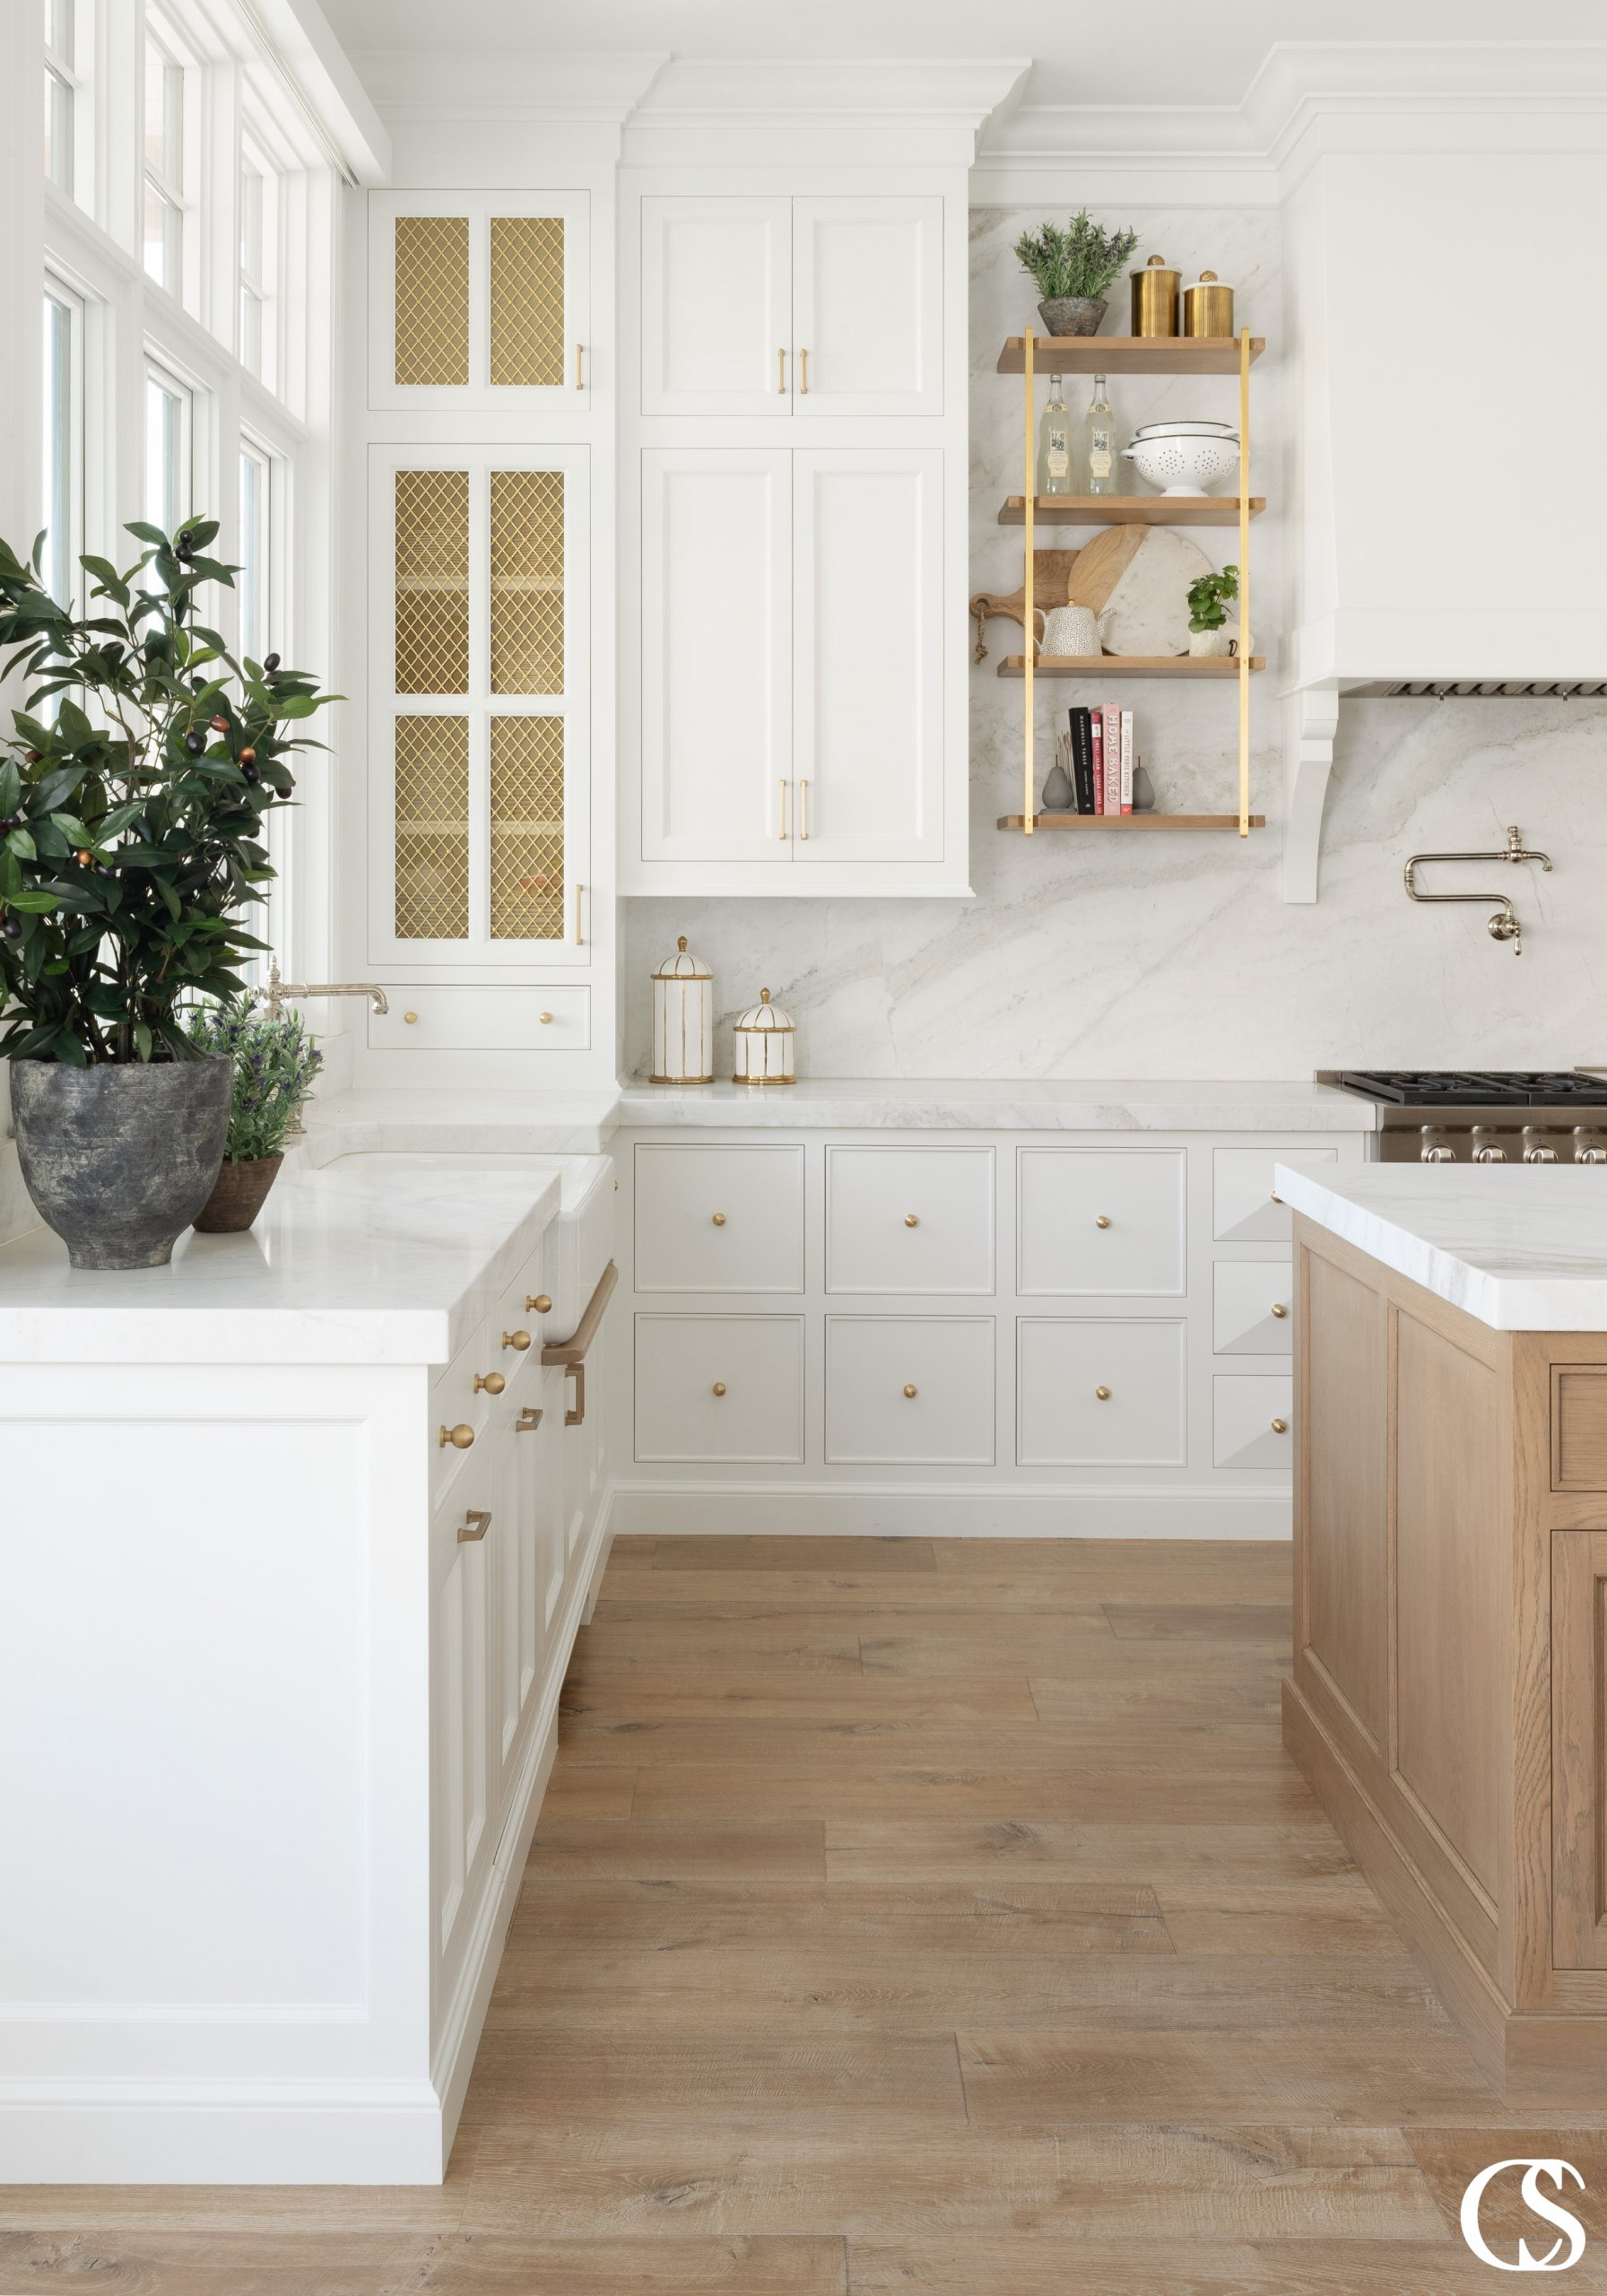 Open shelving, mullioned cupboards, dimensional cabinet doors, and a complementary wood island all come together in some of the best built in custom cabinetry out there.